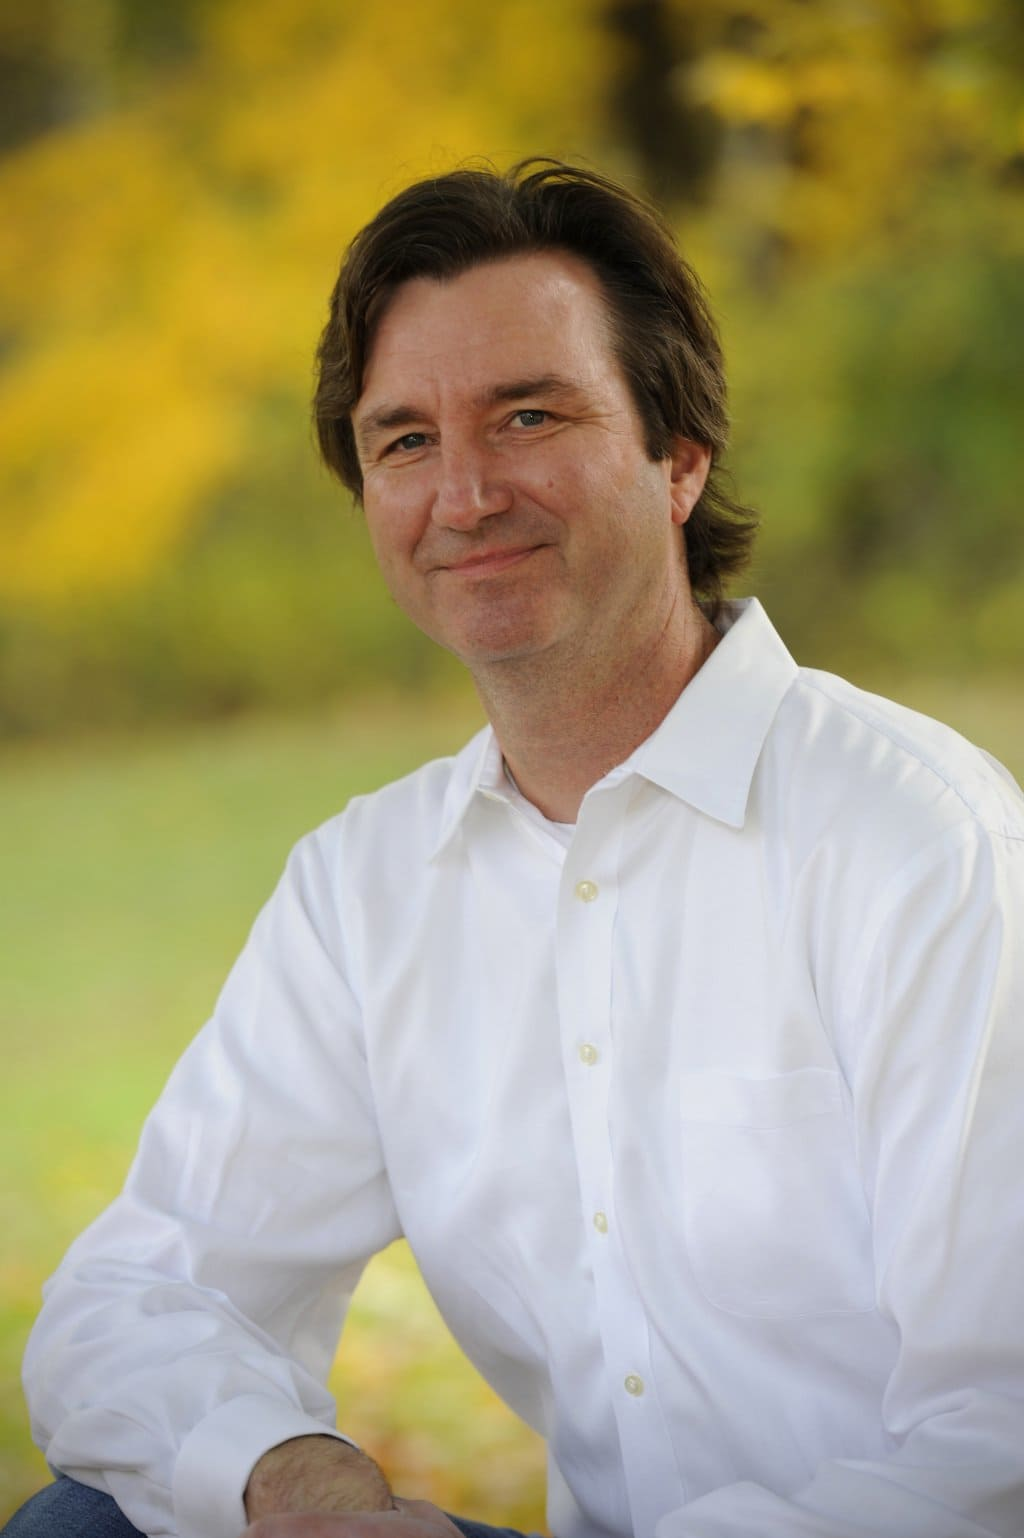 Eric E Ulve, DDS General Dentistry